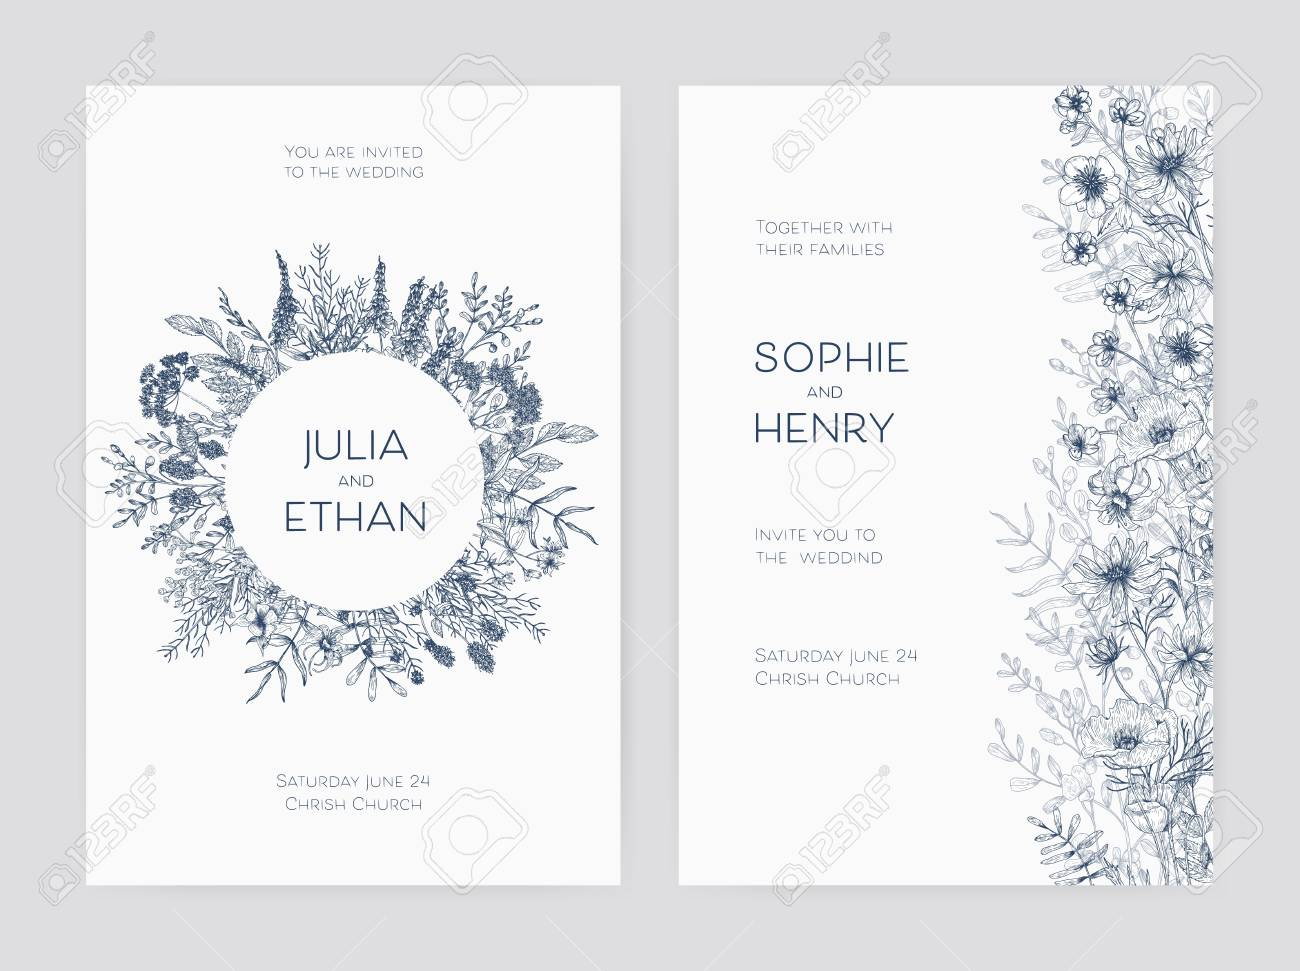 bundle of elegant wedding party invitation templates decorated